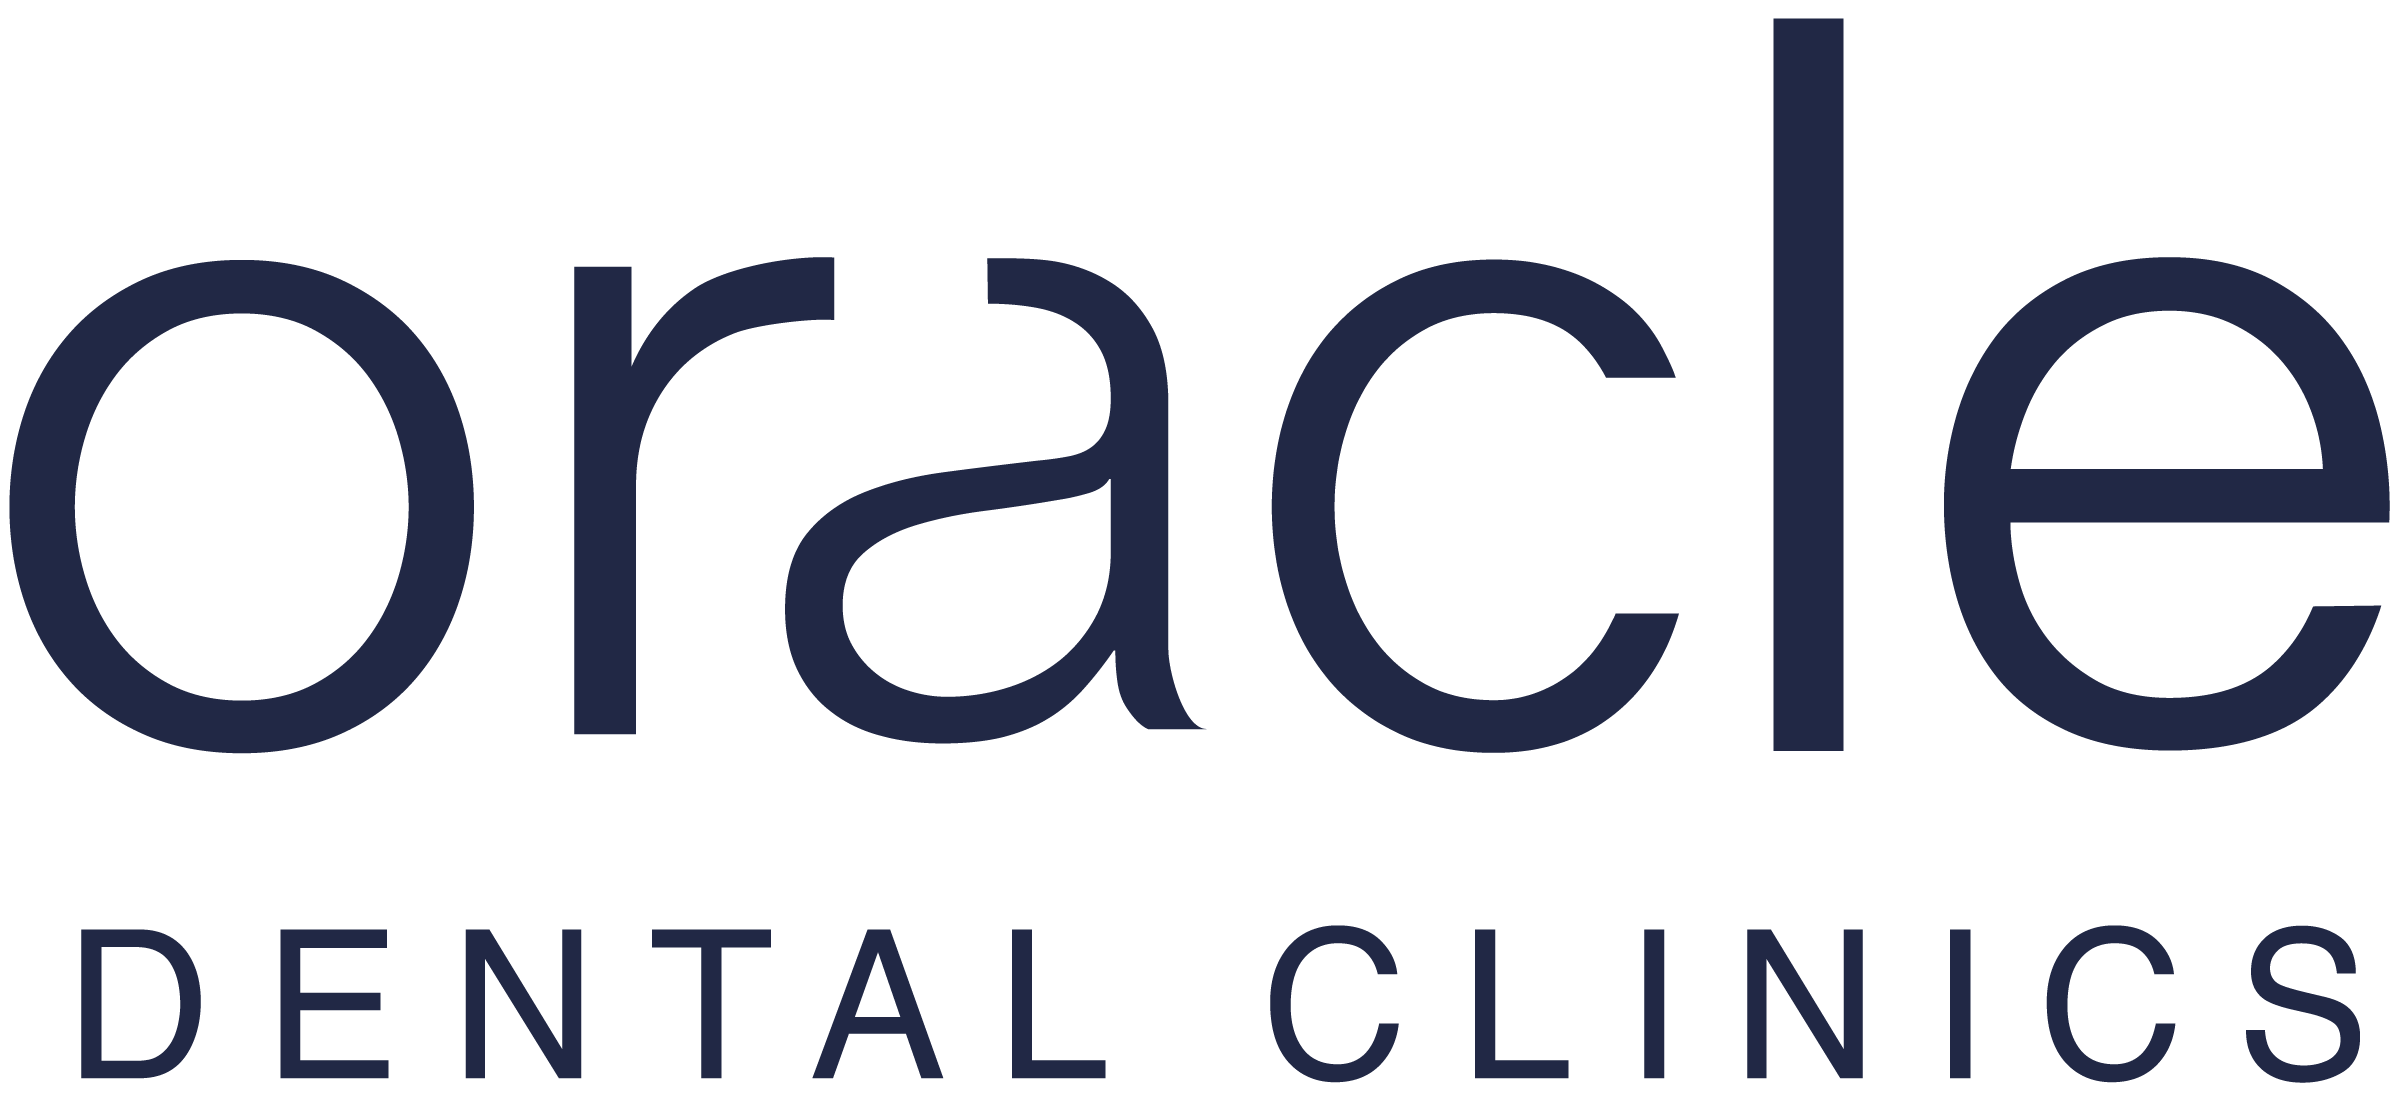 Oracle Dental Clinics